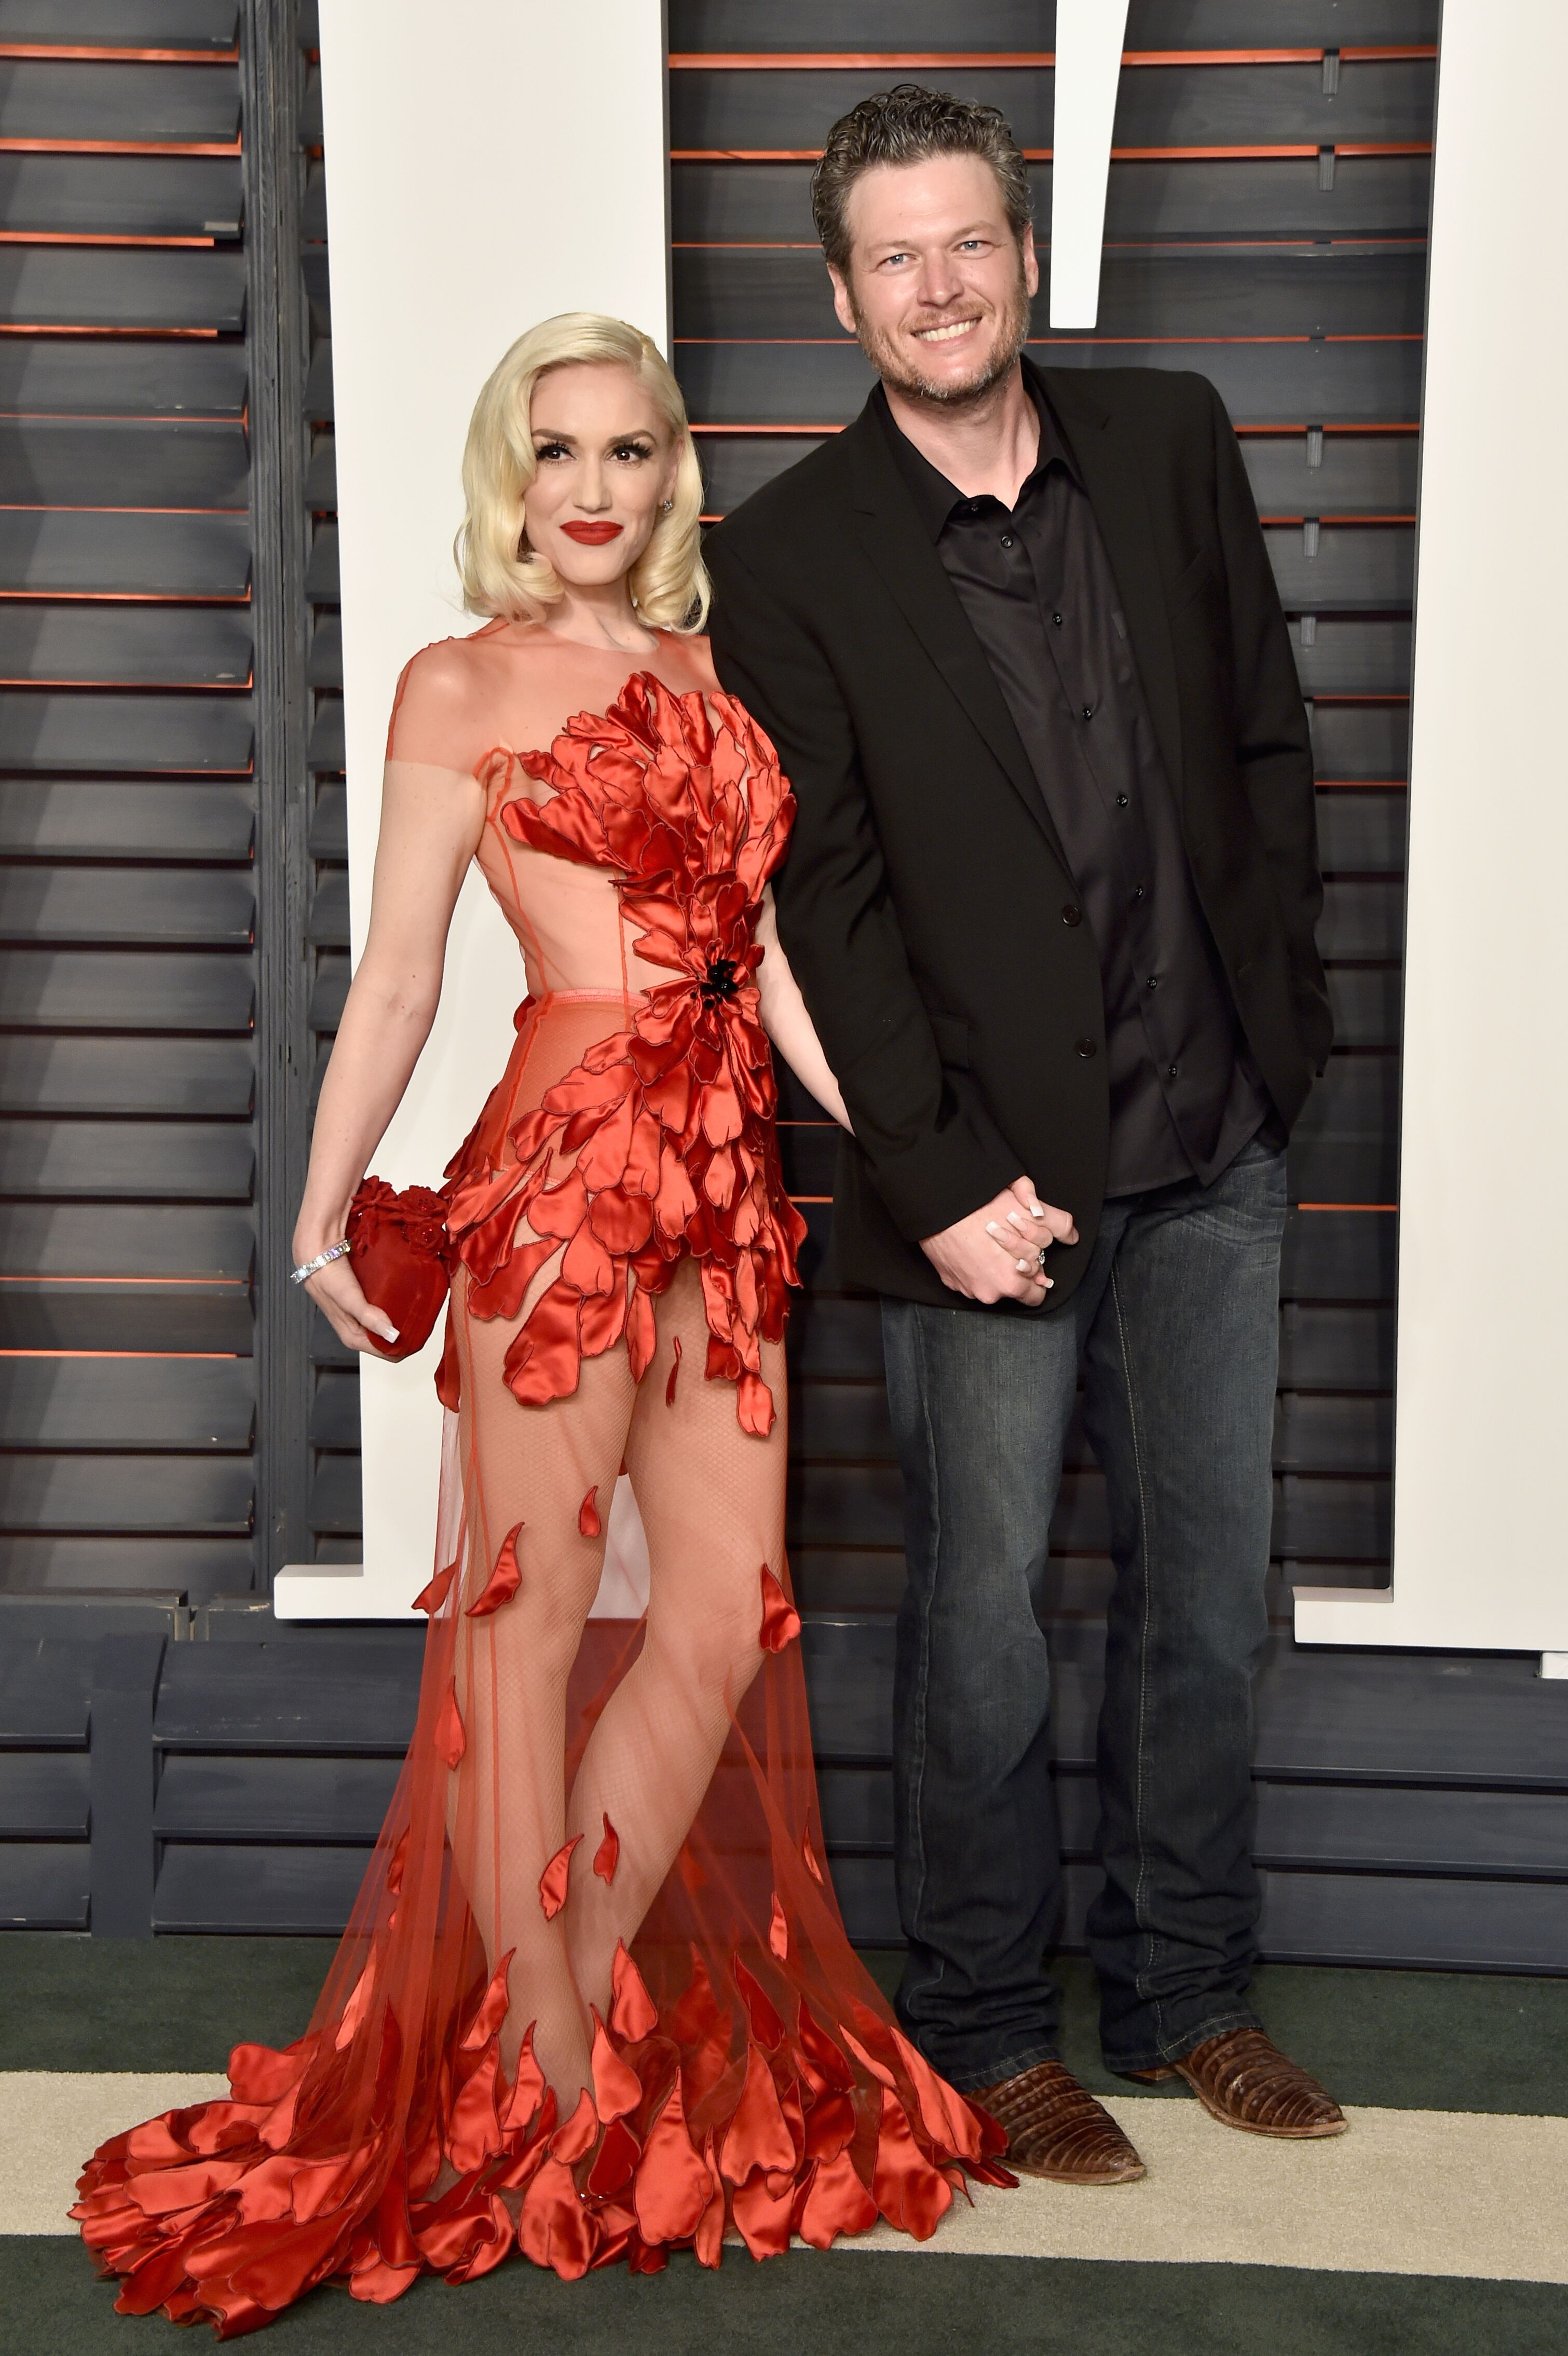 Recording artists Gwen Stefani and Blake Shelton attend the 2016 Vanity Fair Oscar Party Hosted By Graydon Carter at the Wallis Annenberg Center for the Performing Arts on February 28, 2016 in Beverly Hills, California. | Source: Getty Images